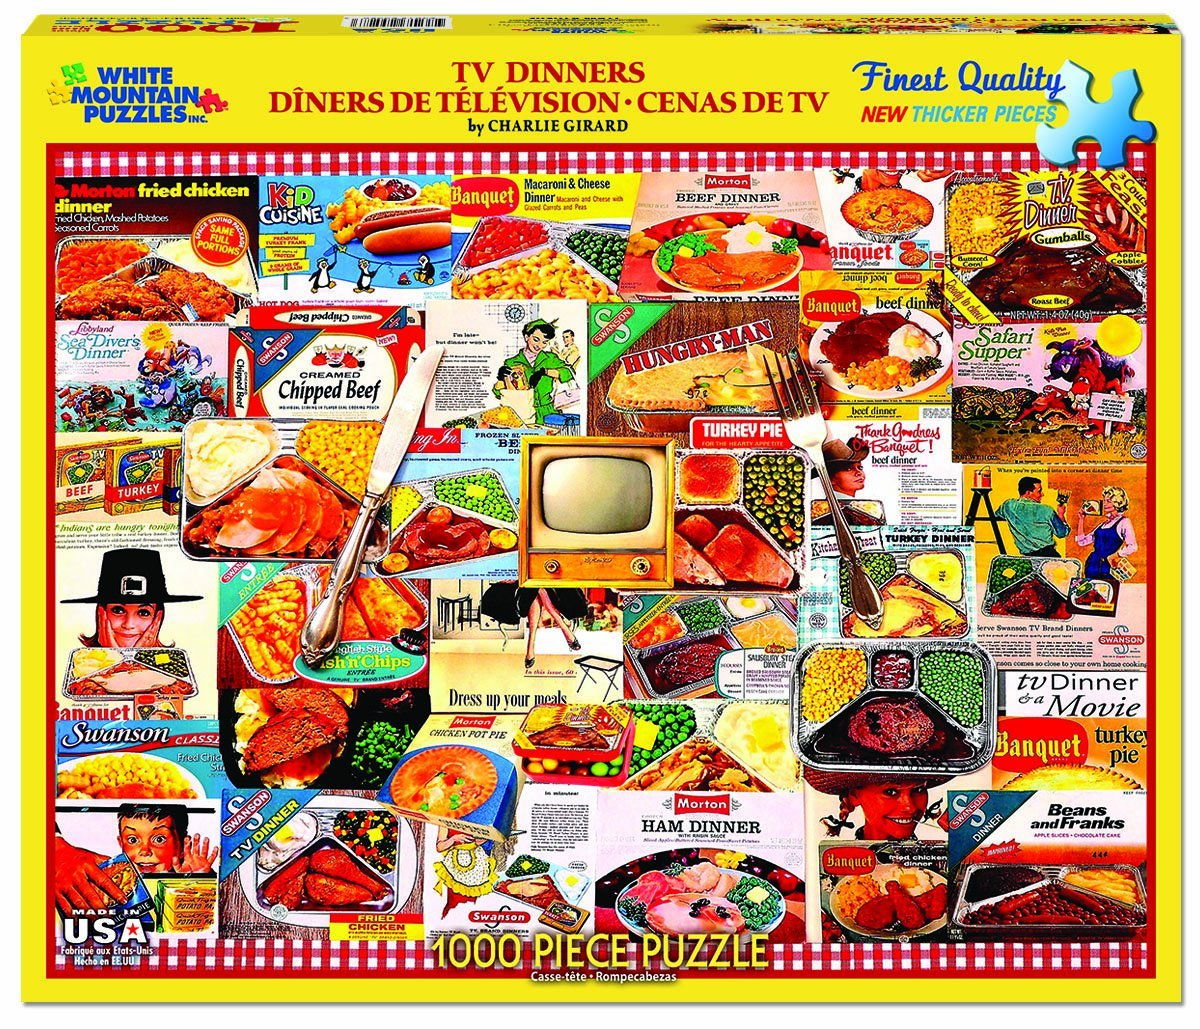 White Mountain Puzzles Tv Dinners Vintage Collage